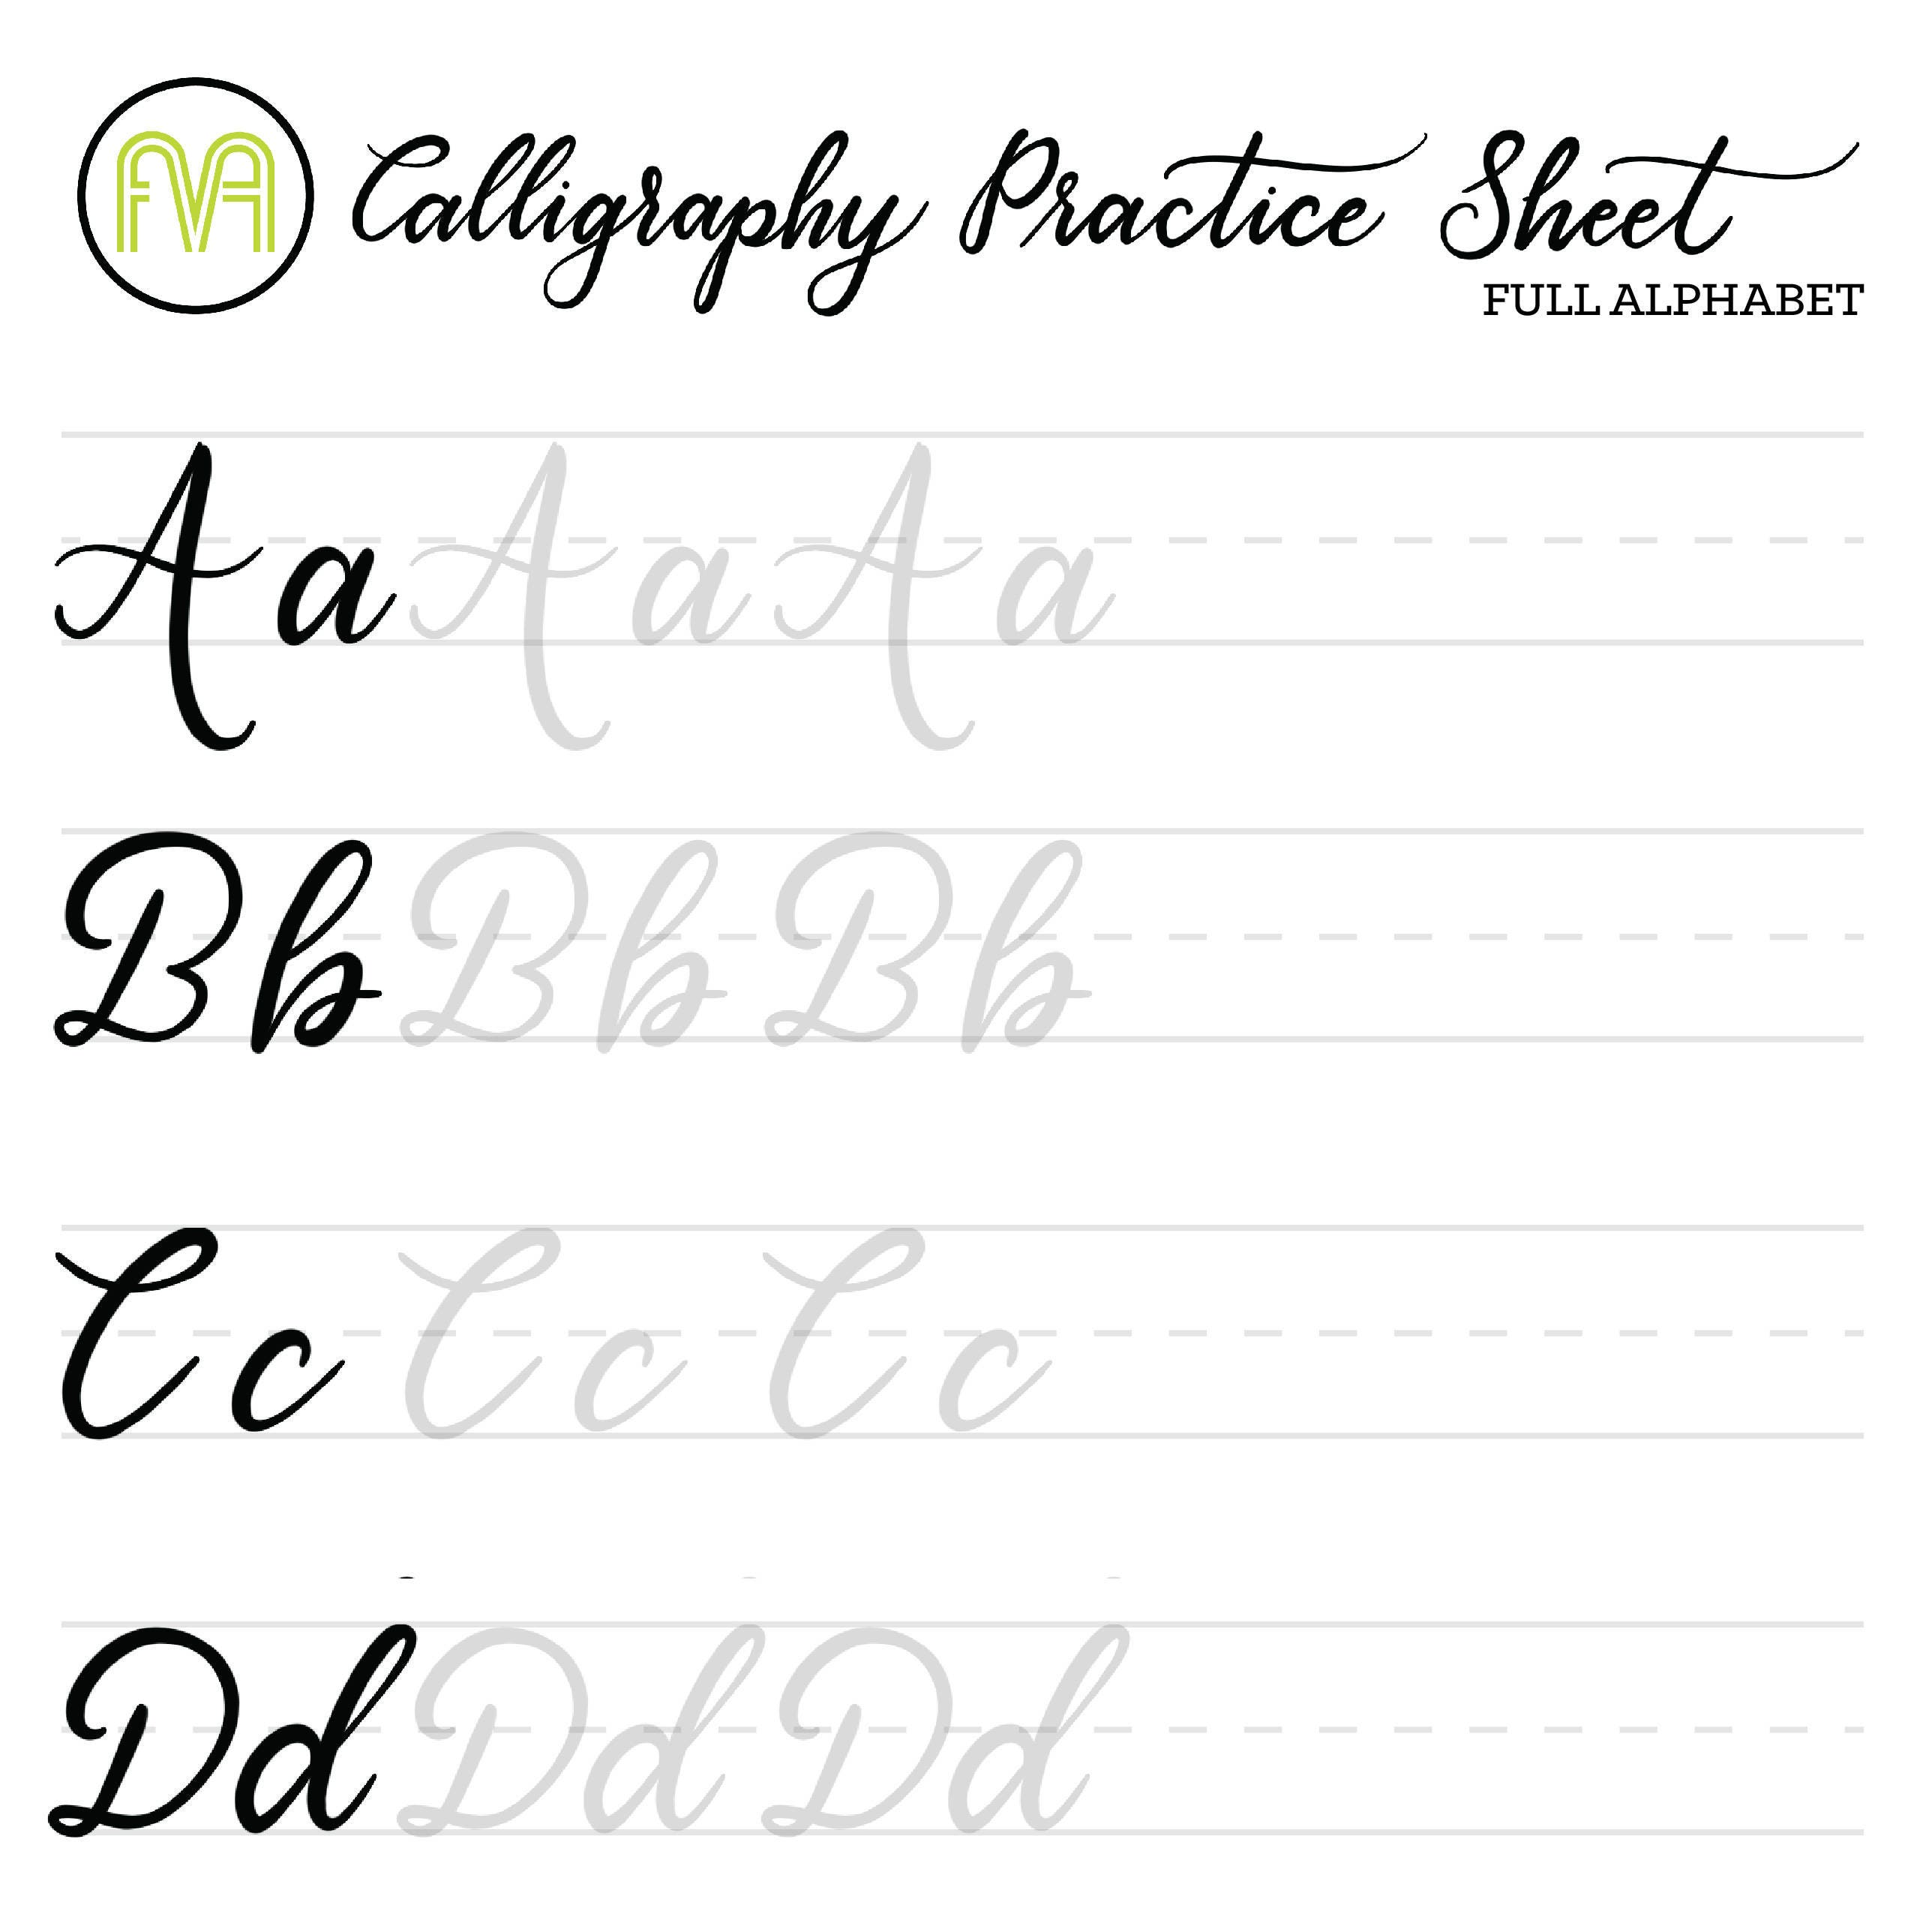 photo regarding Calligraphy Practice Sheets Printable referred to as Calligraphy Train Sheets Finish Alphabet Lettering Electronic Obtain  Printable